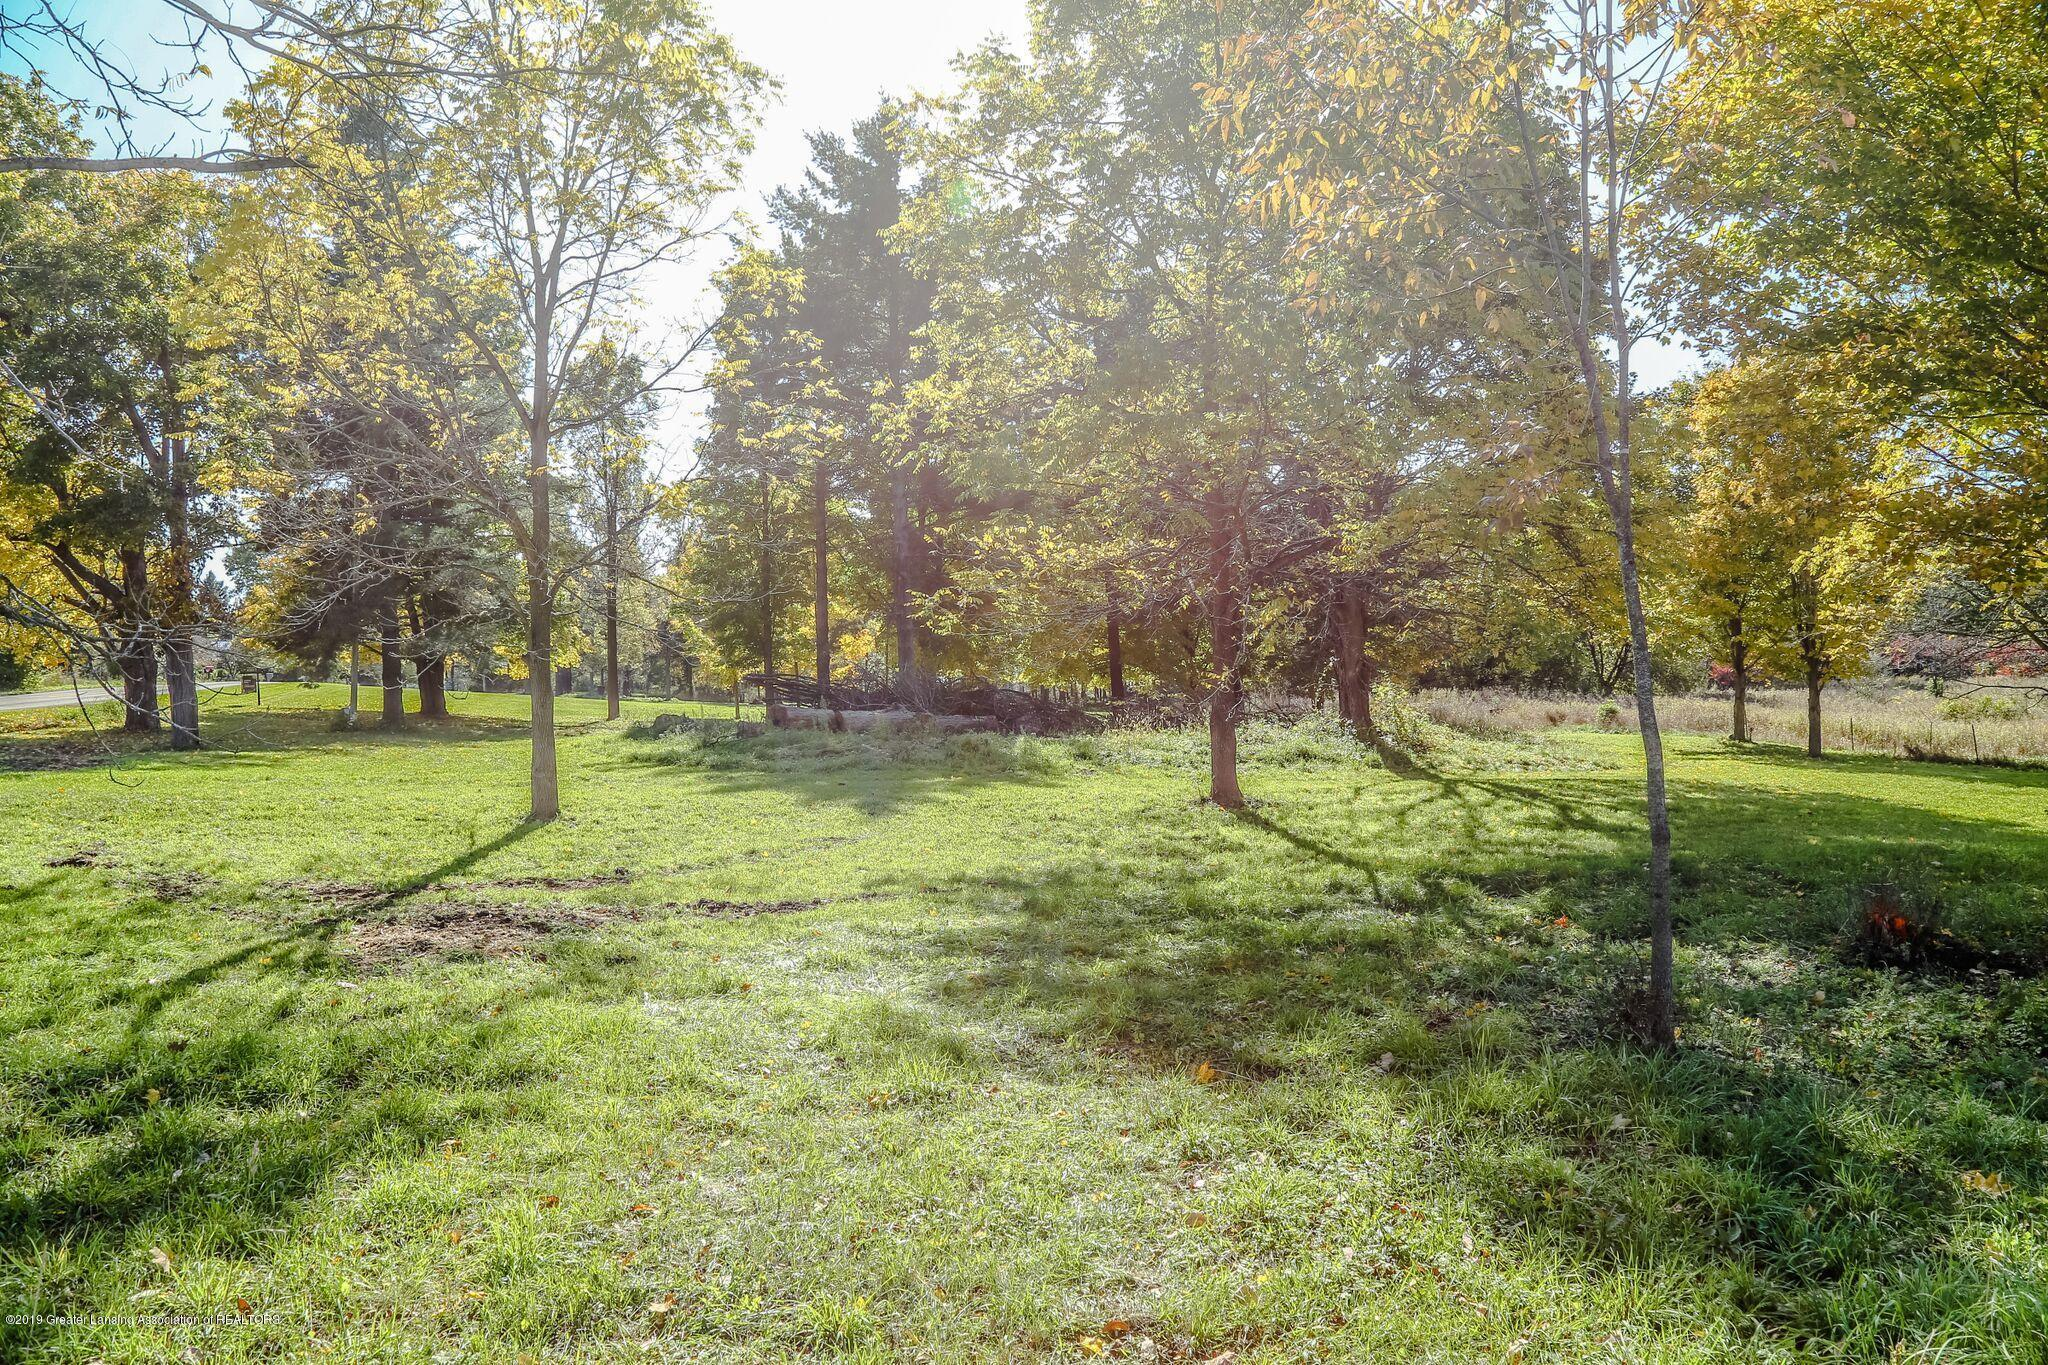 802 S Waverly Rd - Vacant Land - 4